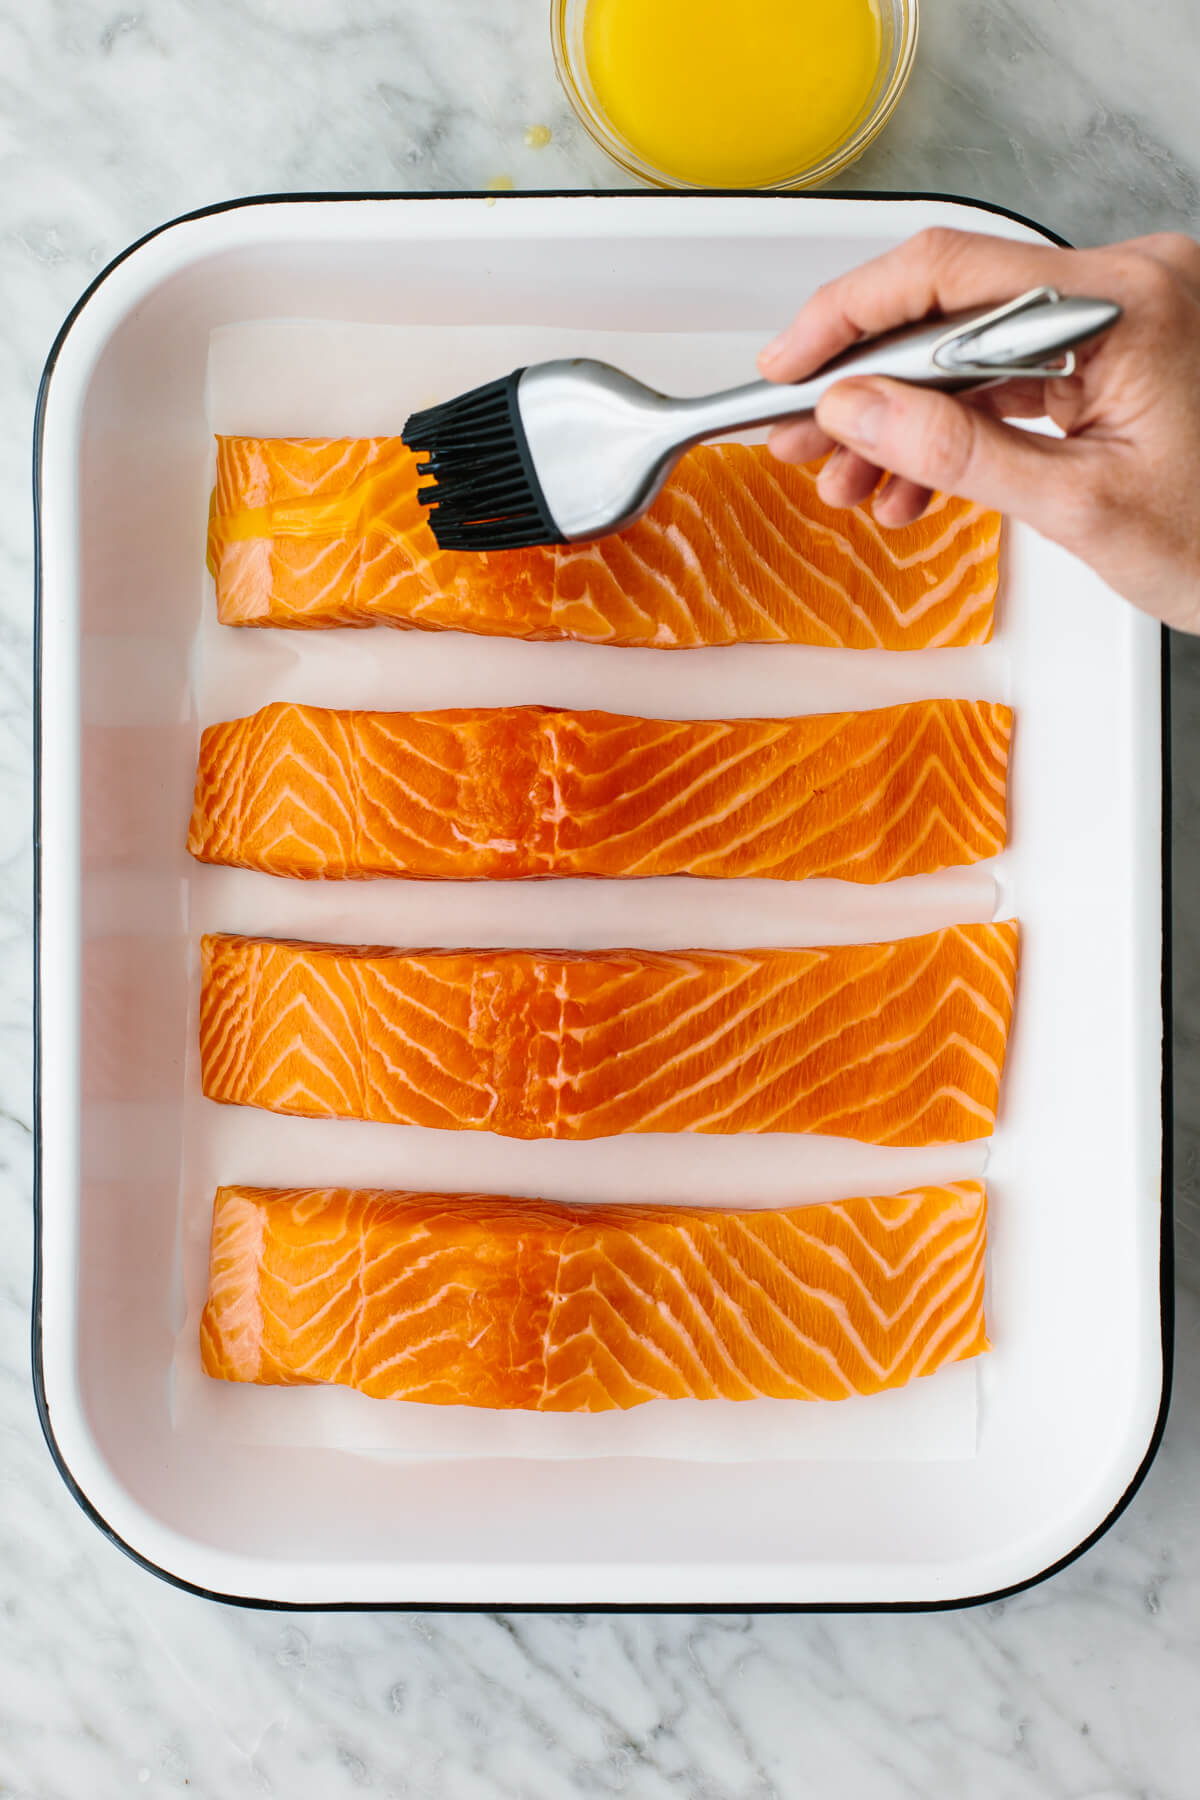 Brushing butter on baked salmon in a pan.